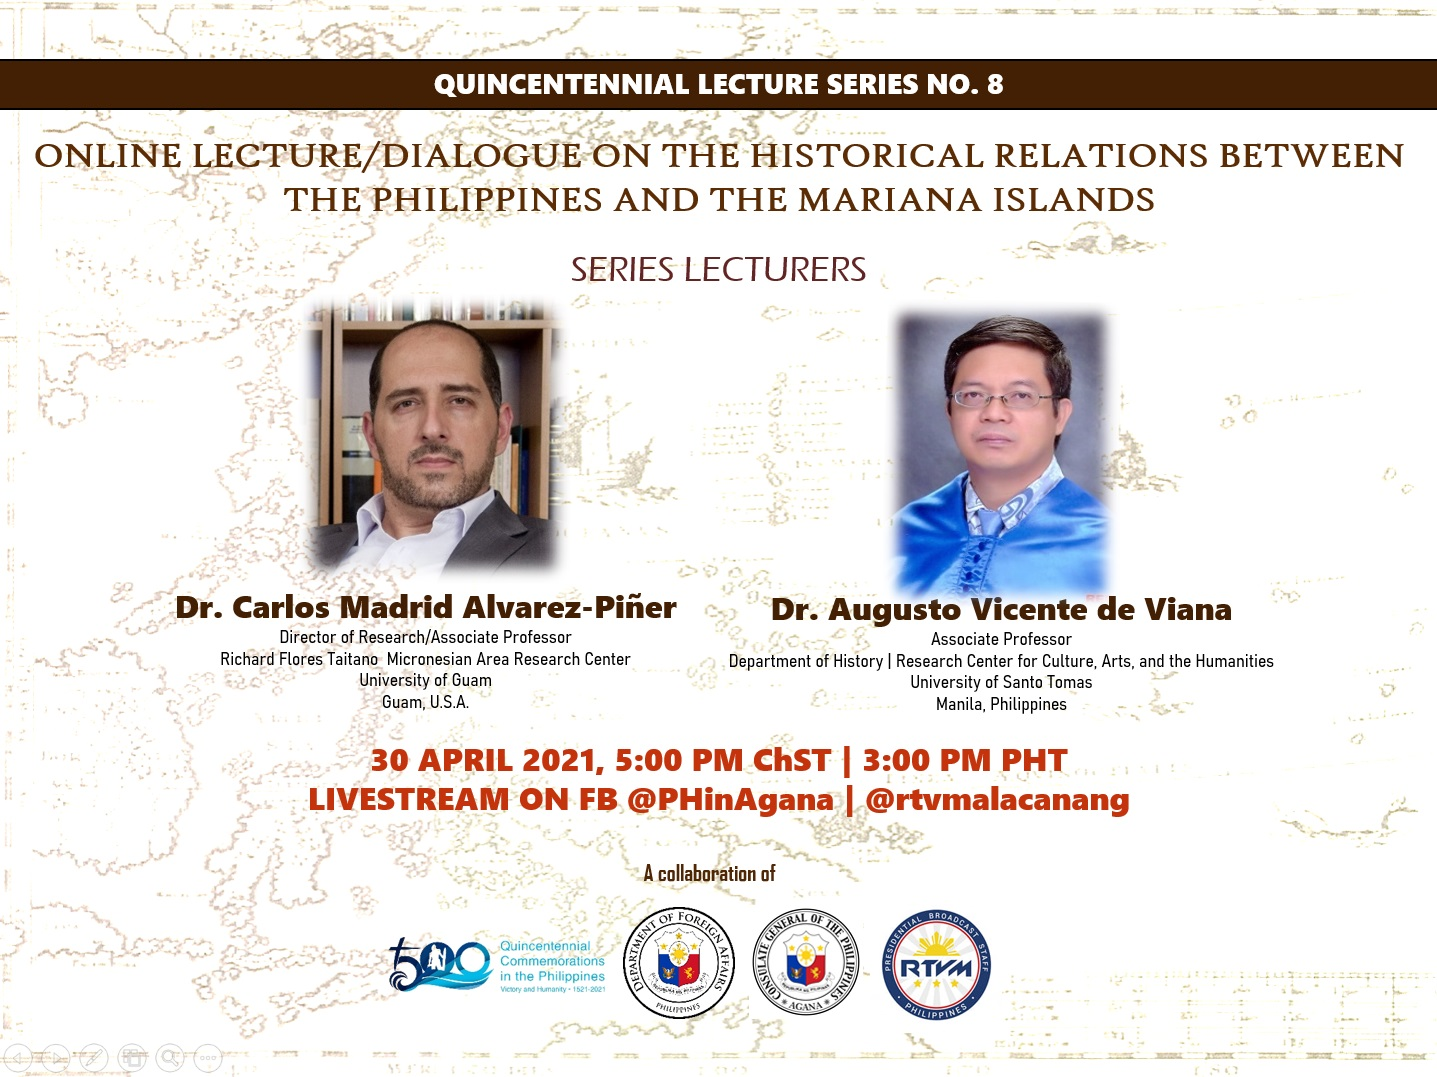 Save the Date: Online Lecture on the Historical Relations between the Philippines and the Mariana Islands, 30 April 2021